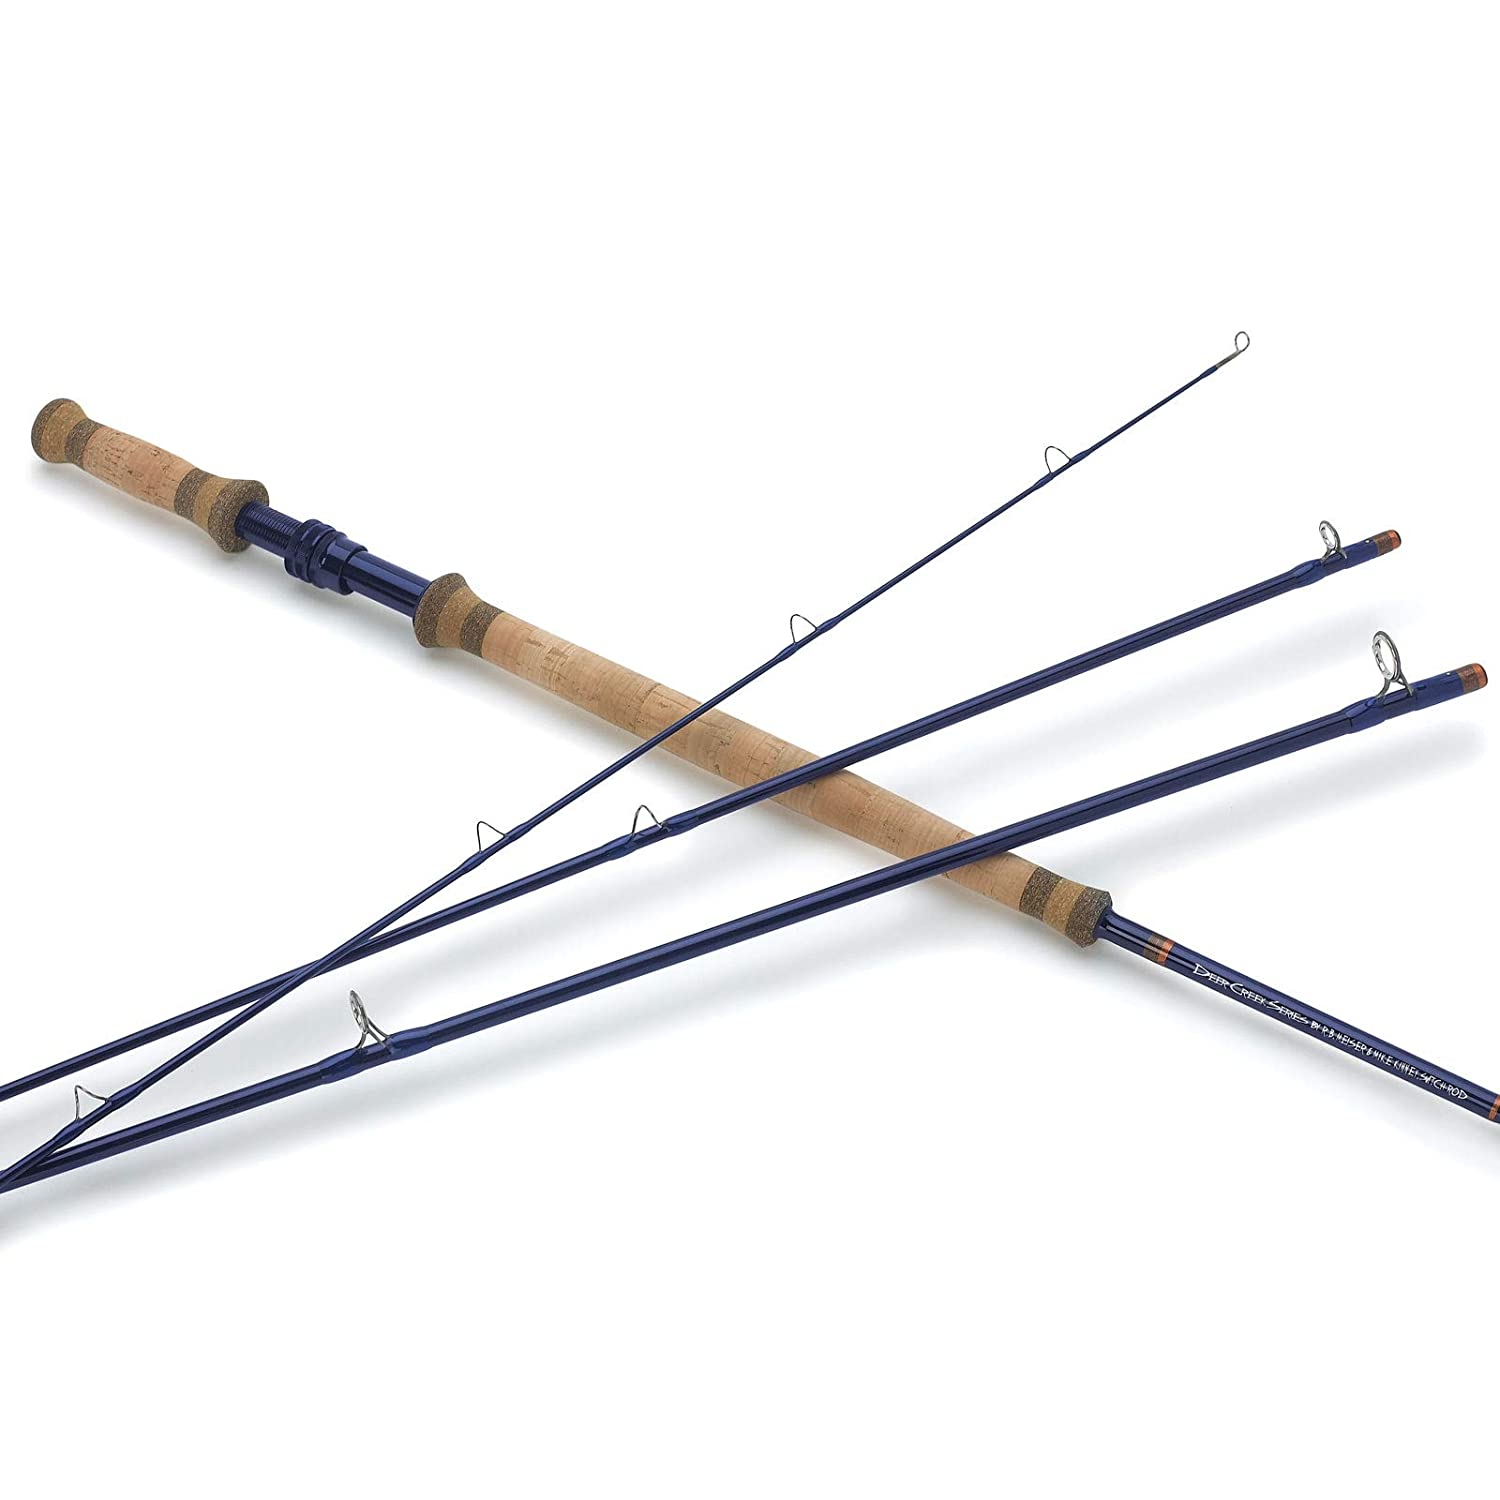 Temple Fork Outfitters TFO Deer Creek Series Switch Fly Fishing Rods